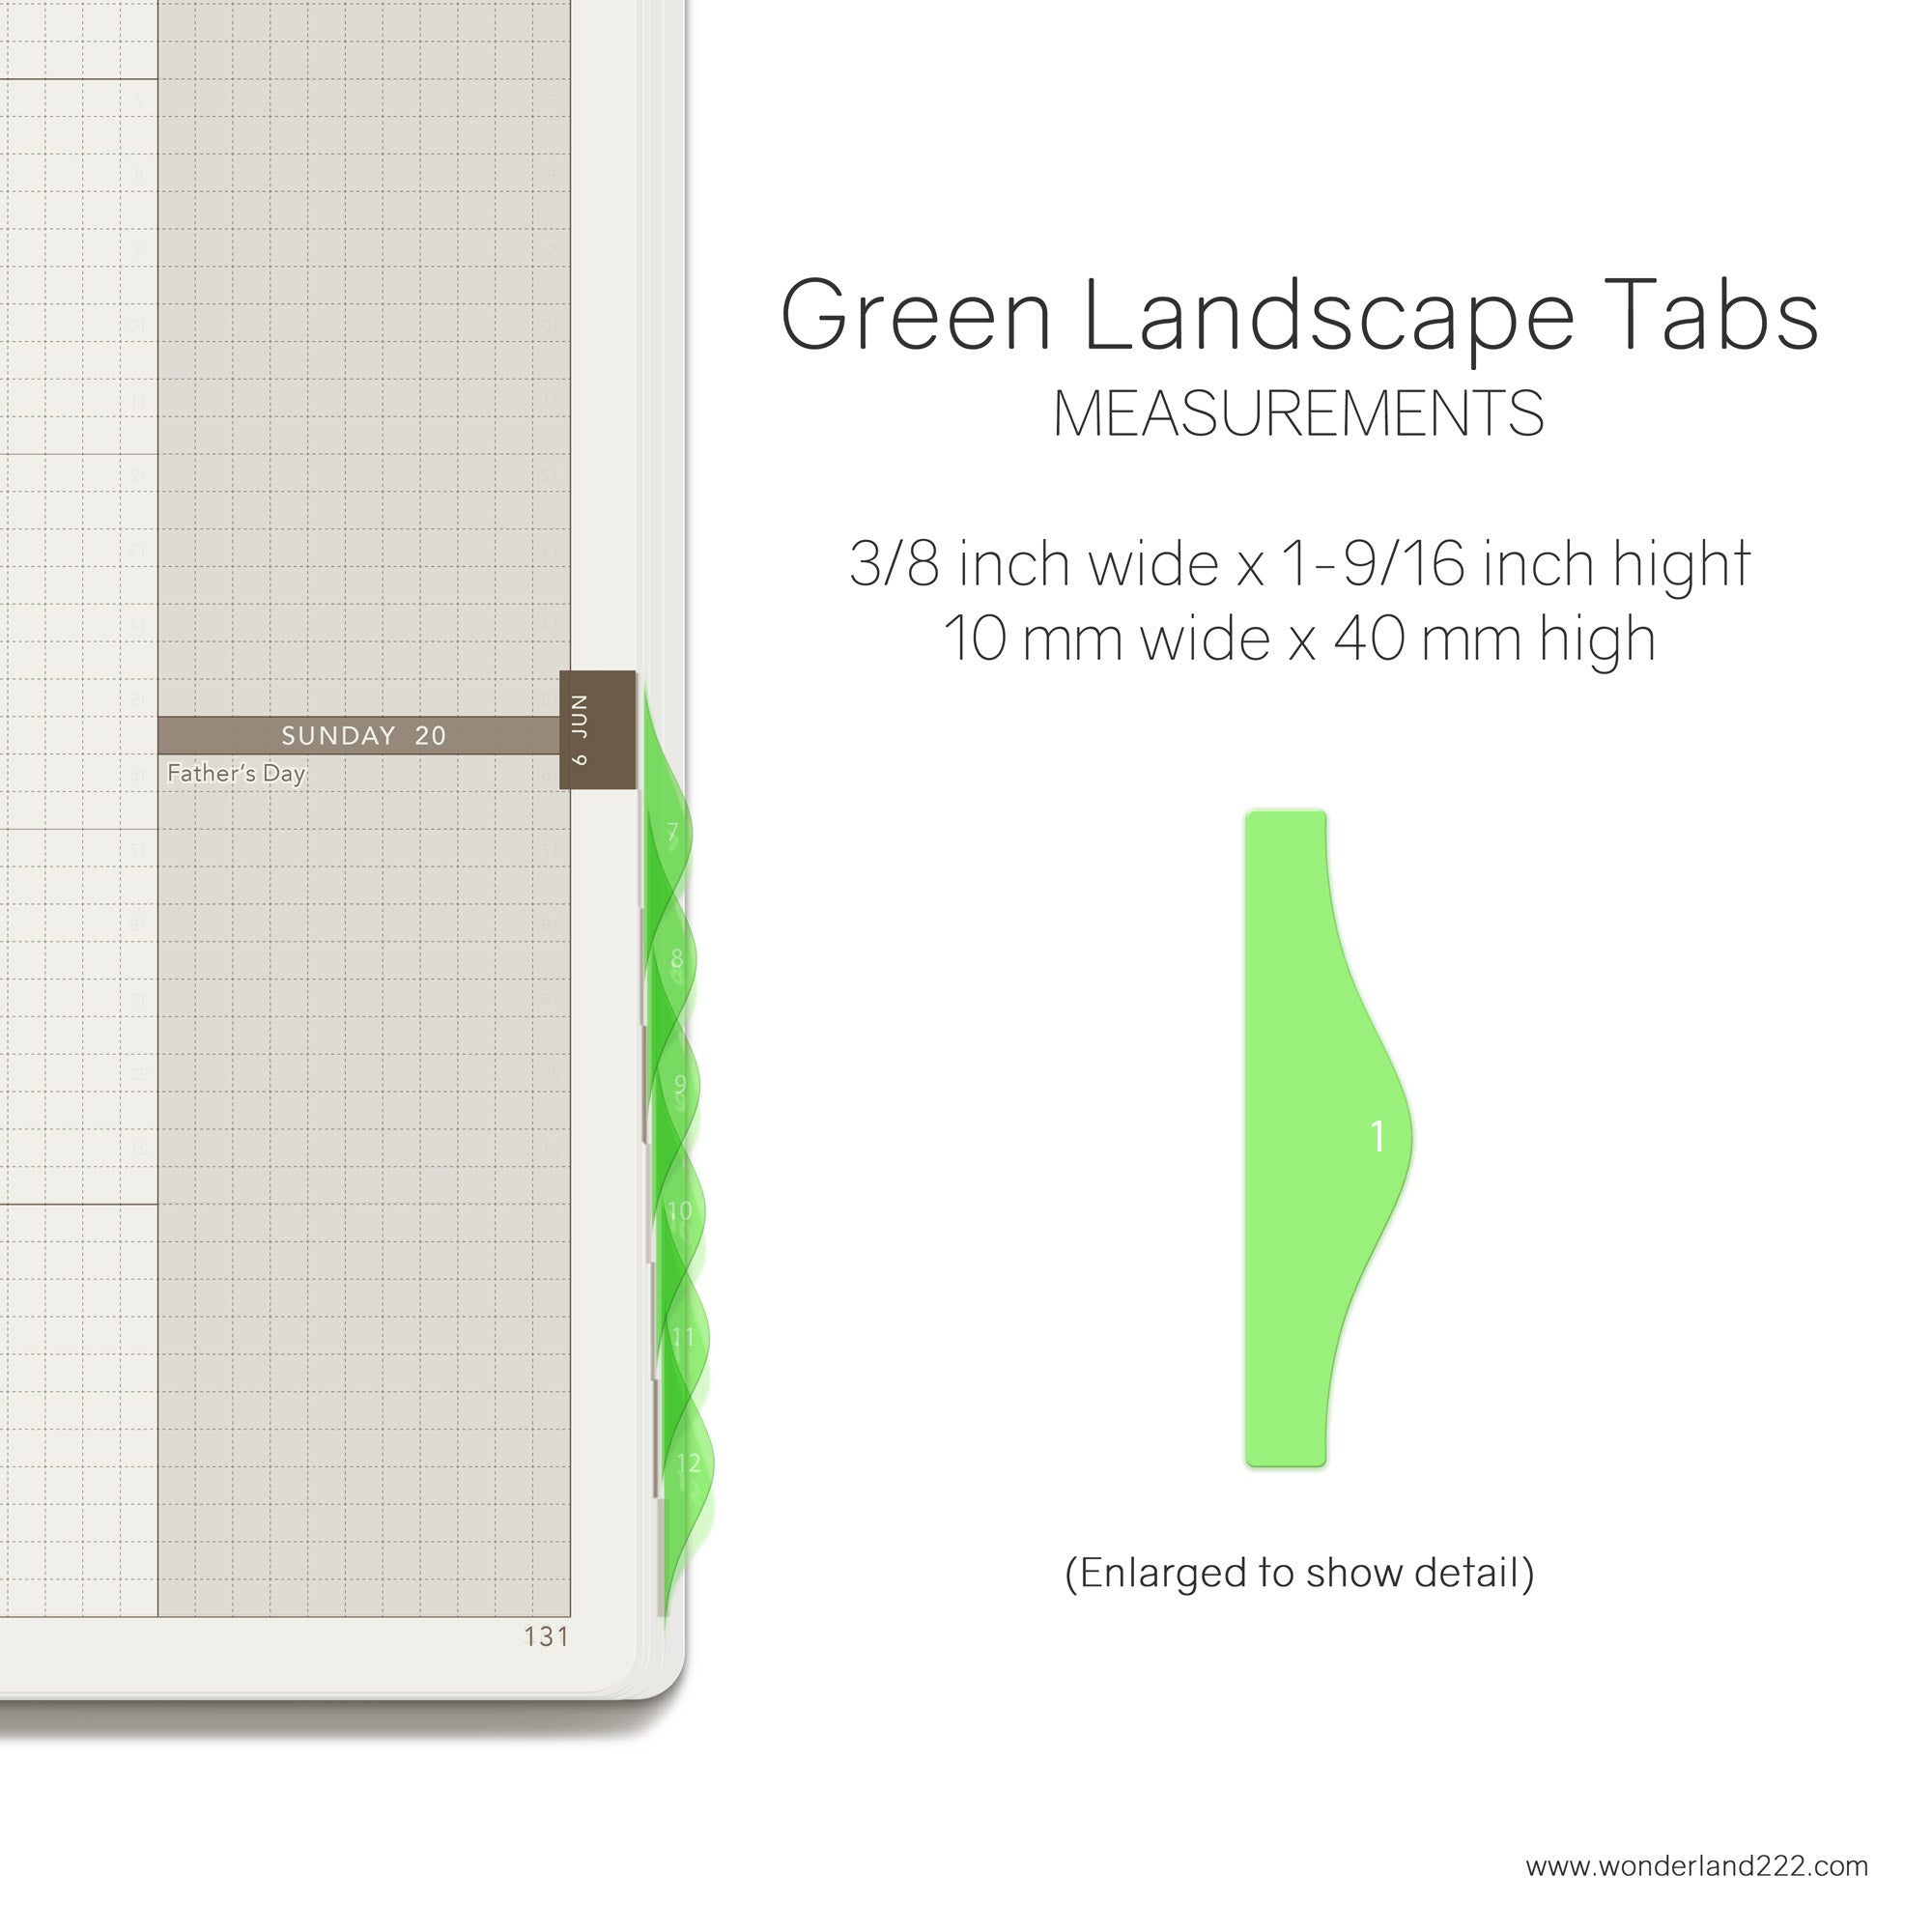 Wonderland 222 Tomoe River Paper Notebooks Planners with HighTide Landscape Monthly Index Tabs  Green Transparent